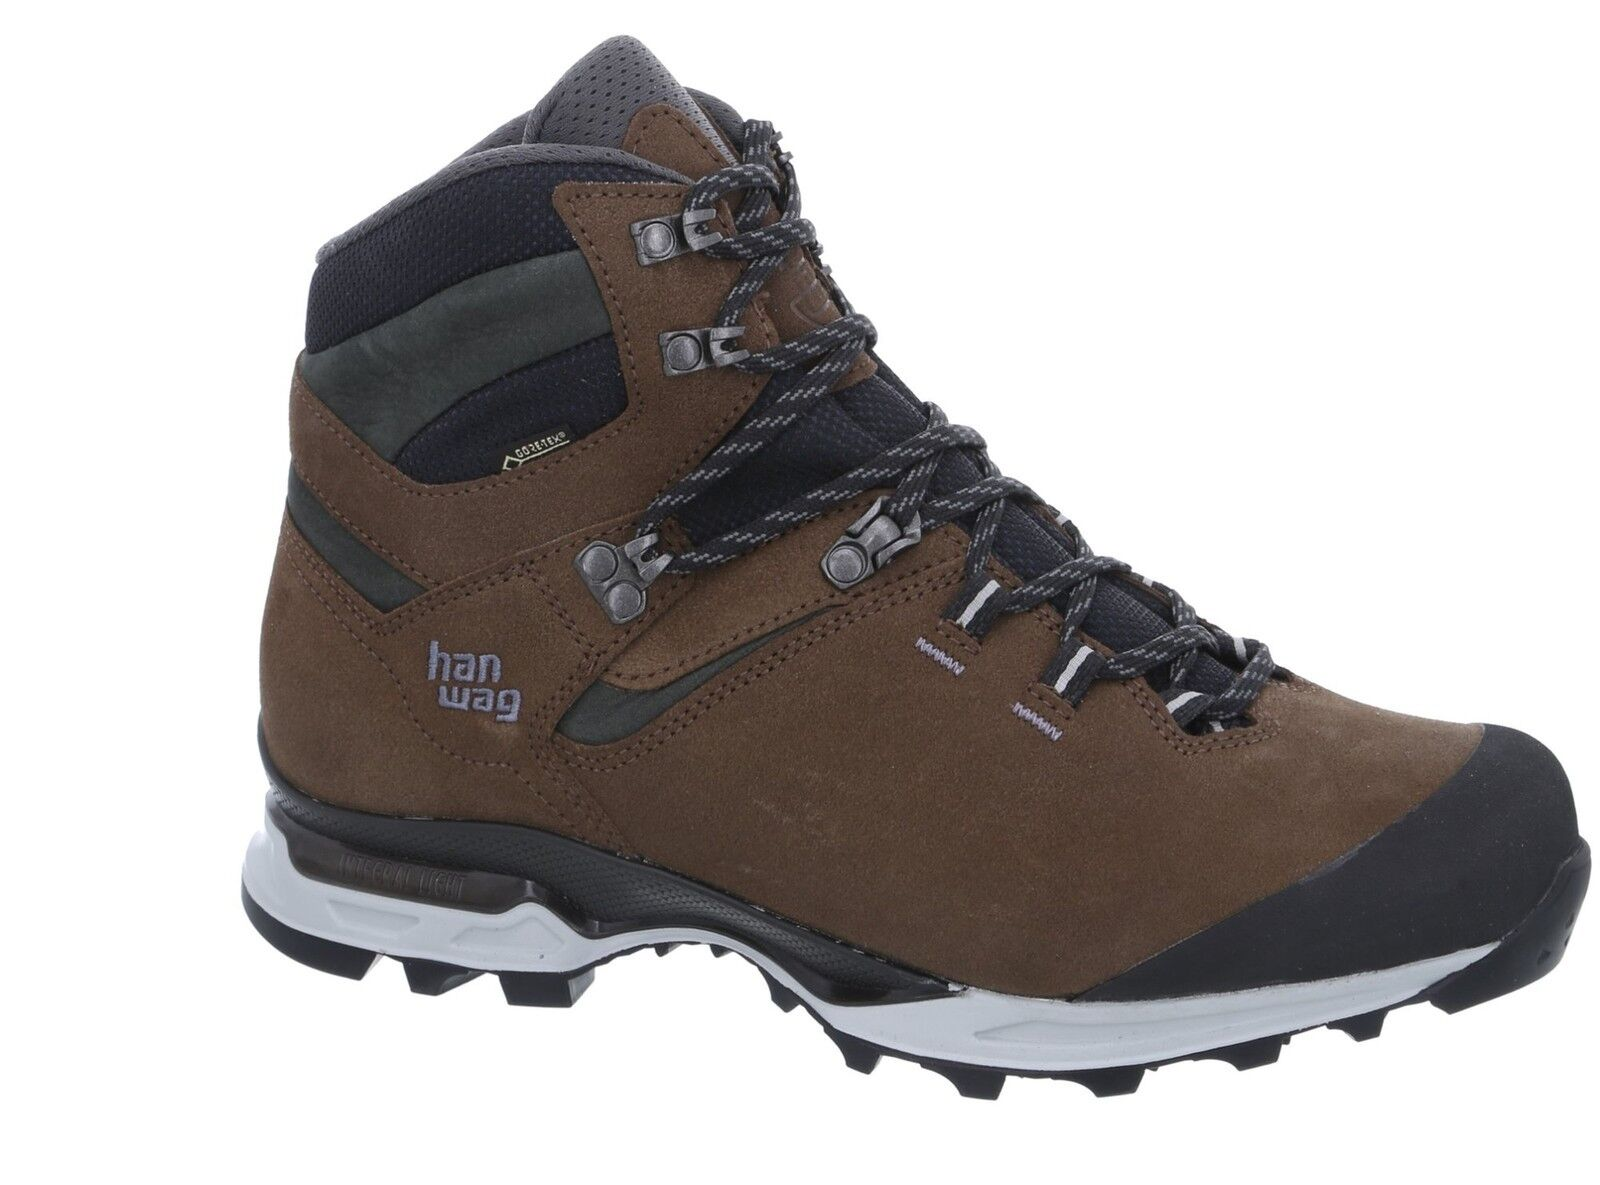 Hanwag Montagna   Tatra LIGHT GTX dimensione 10 - 44,5 Brown/ANTHRACITE